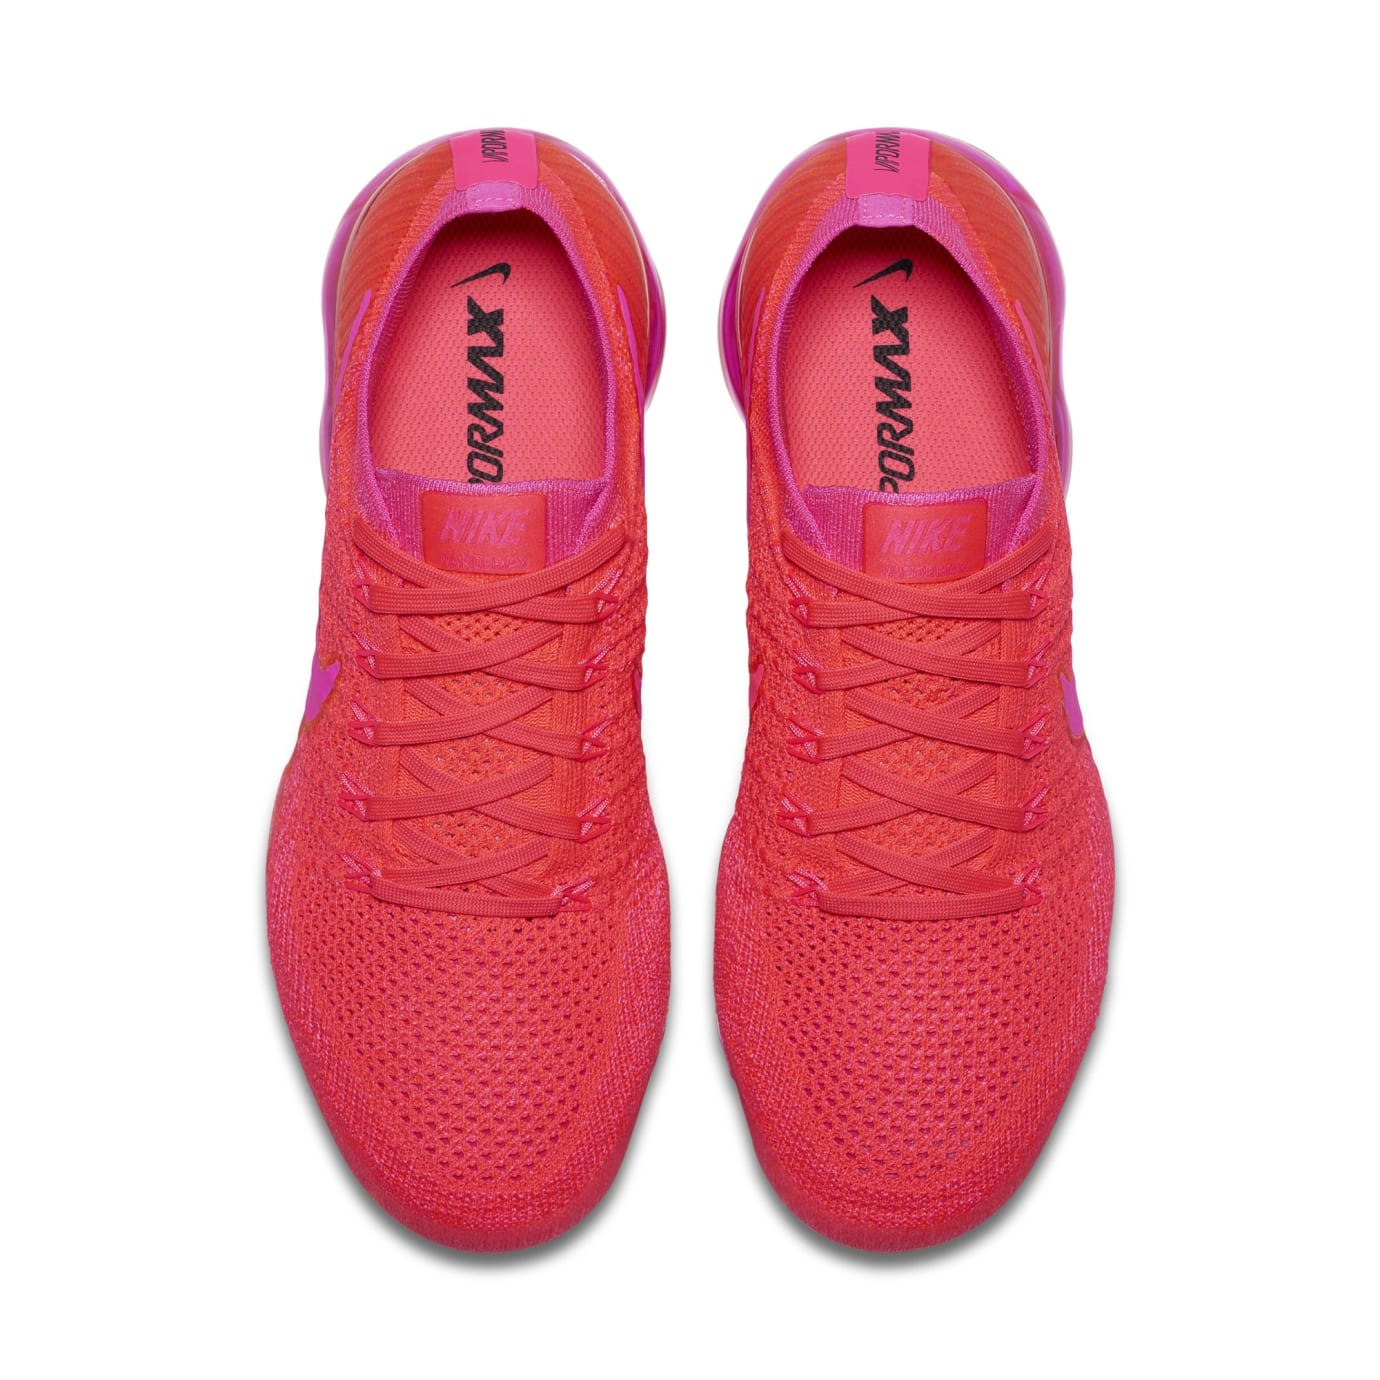 100% quality on sale skate shoes Nike Air Vapormax WMNS Bright Crimson/Hot Pink | Sole Collector